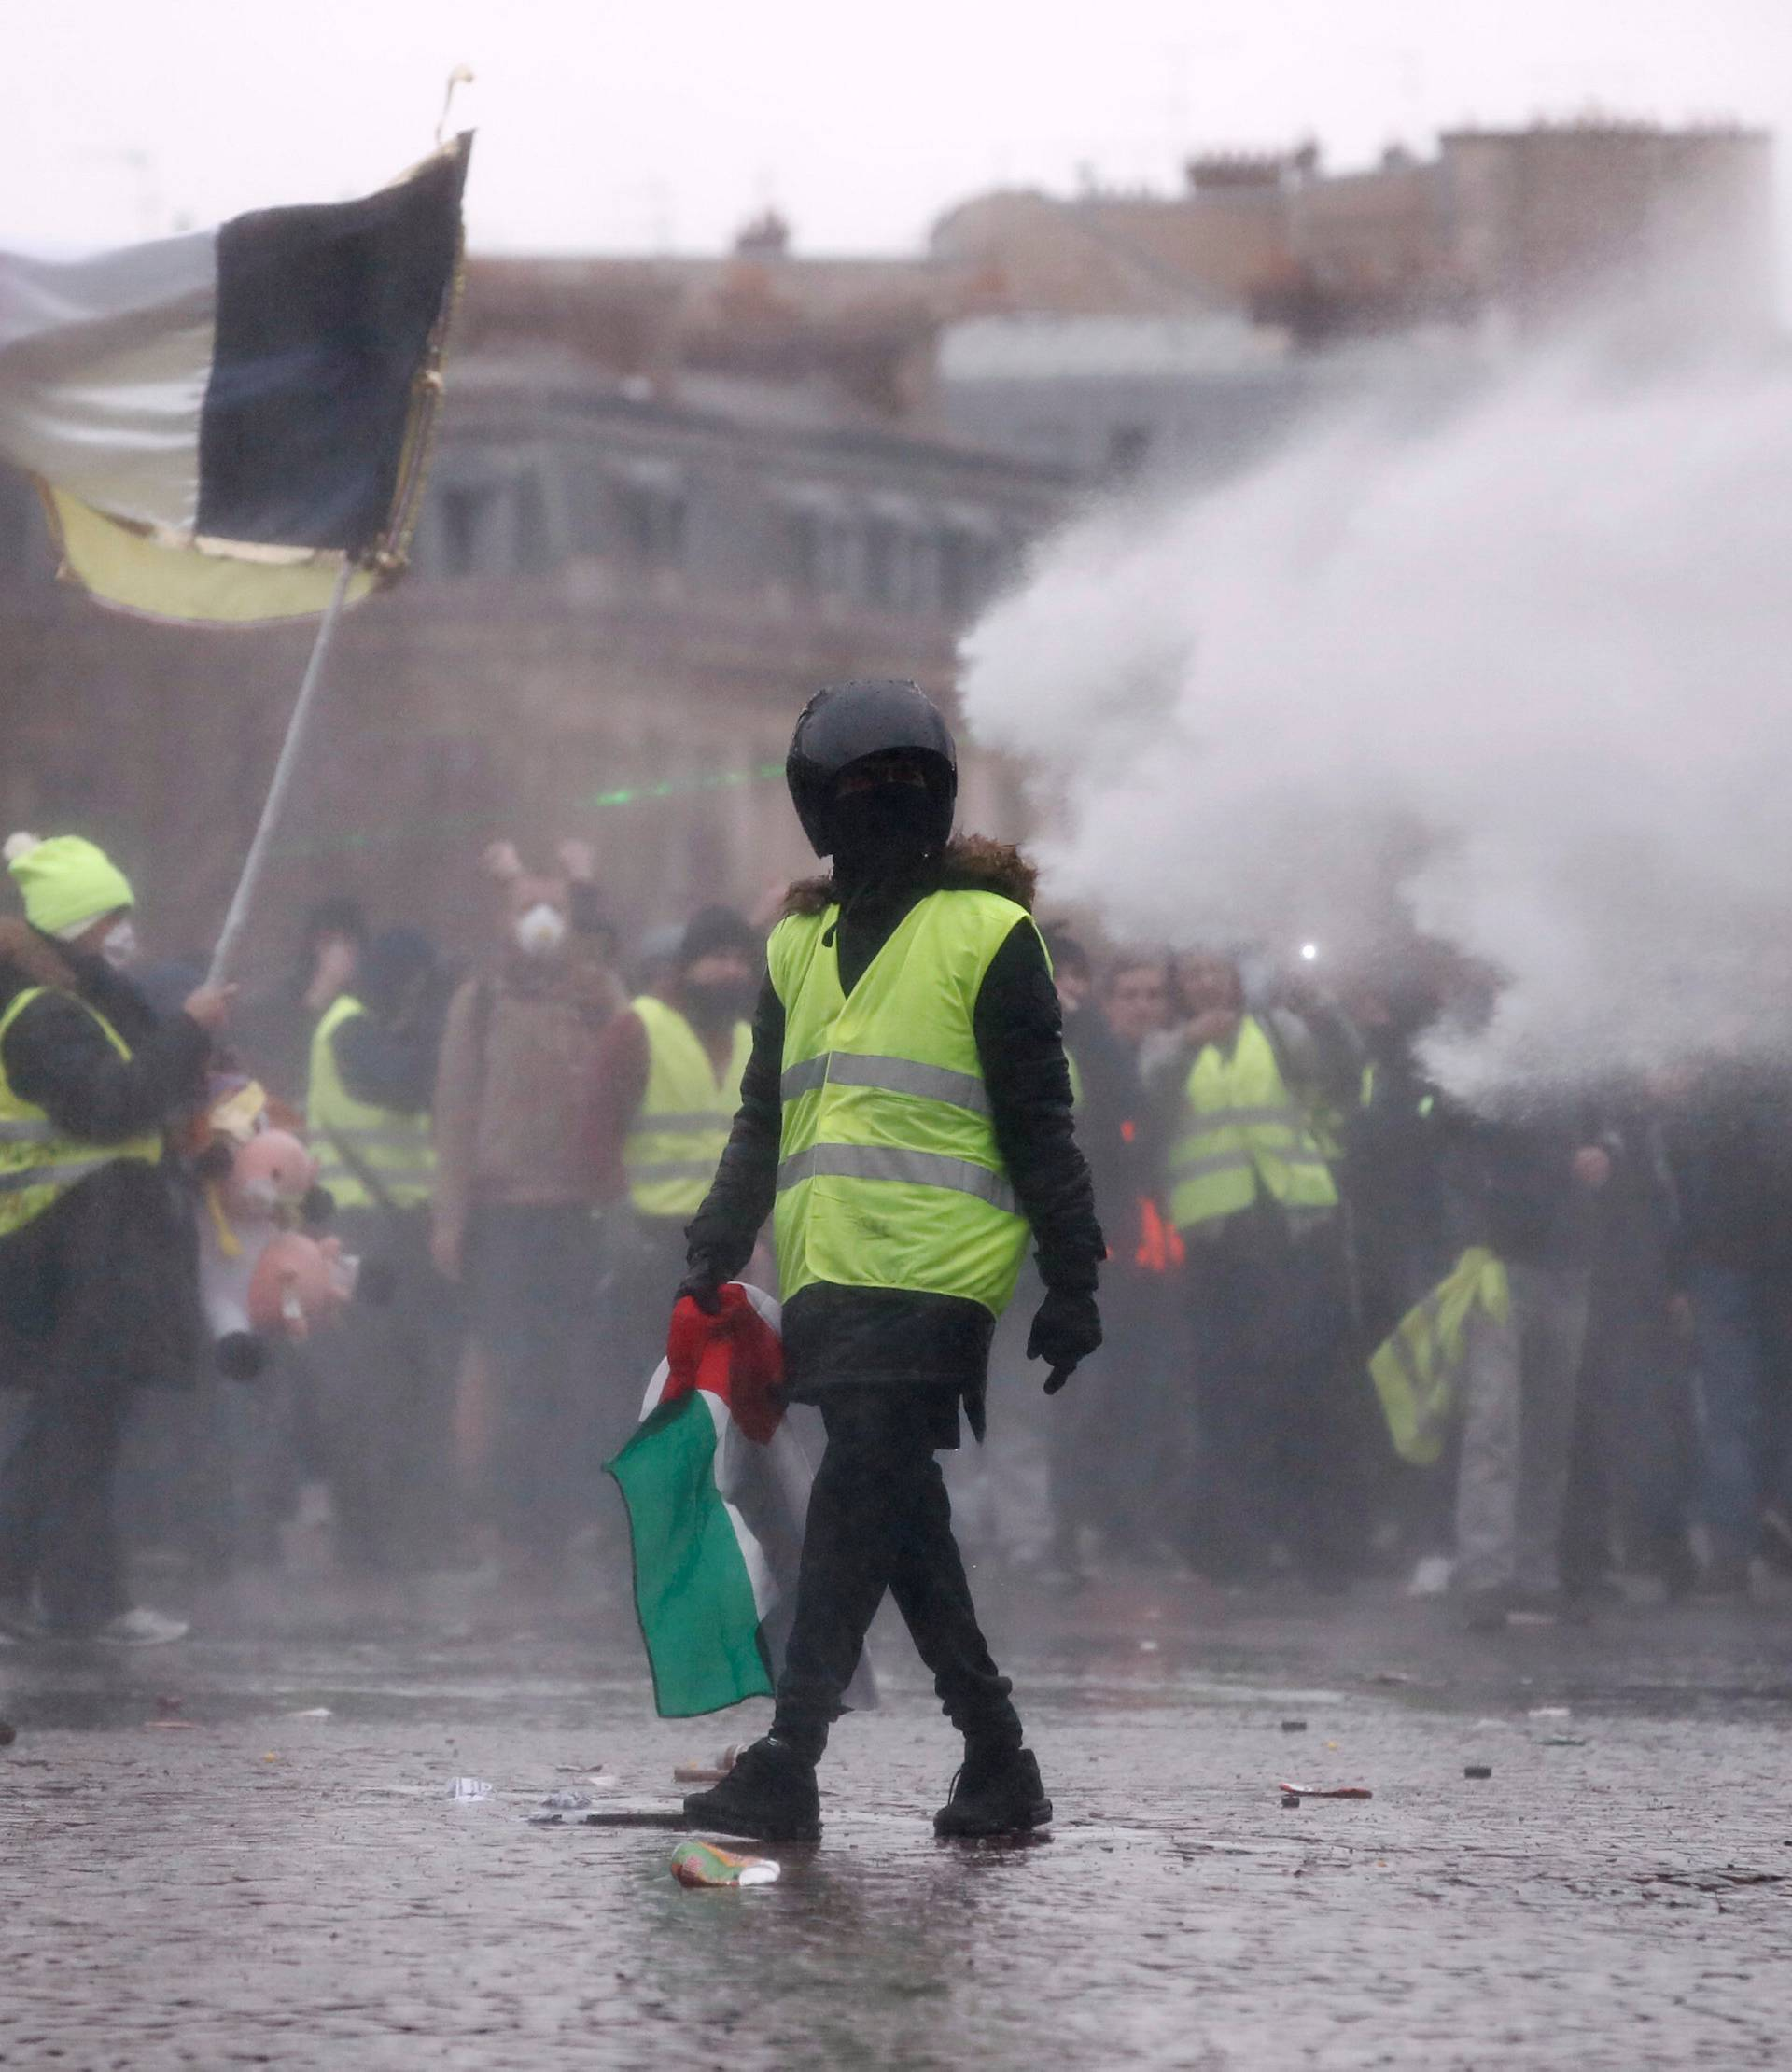 """A protester wearing a yellow vest takes part in a demonstration by the """"yellow vests"""" movement as police use a water cannon near the Arc de Triomphe in Paris"""